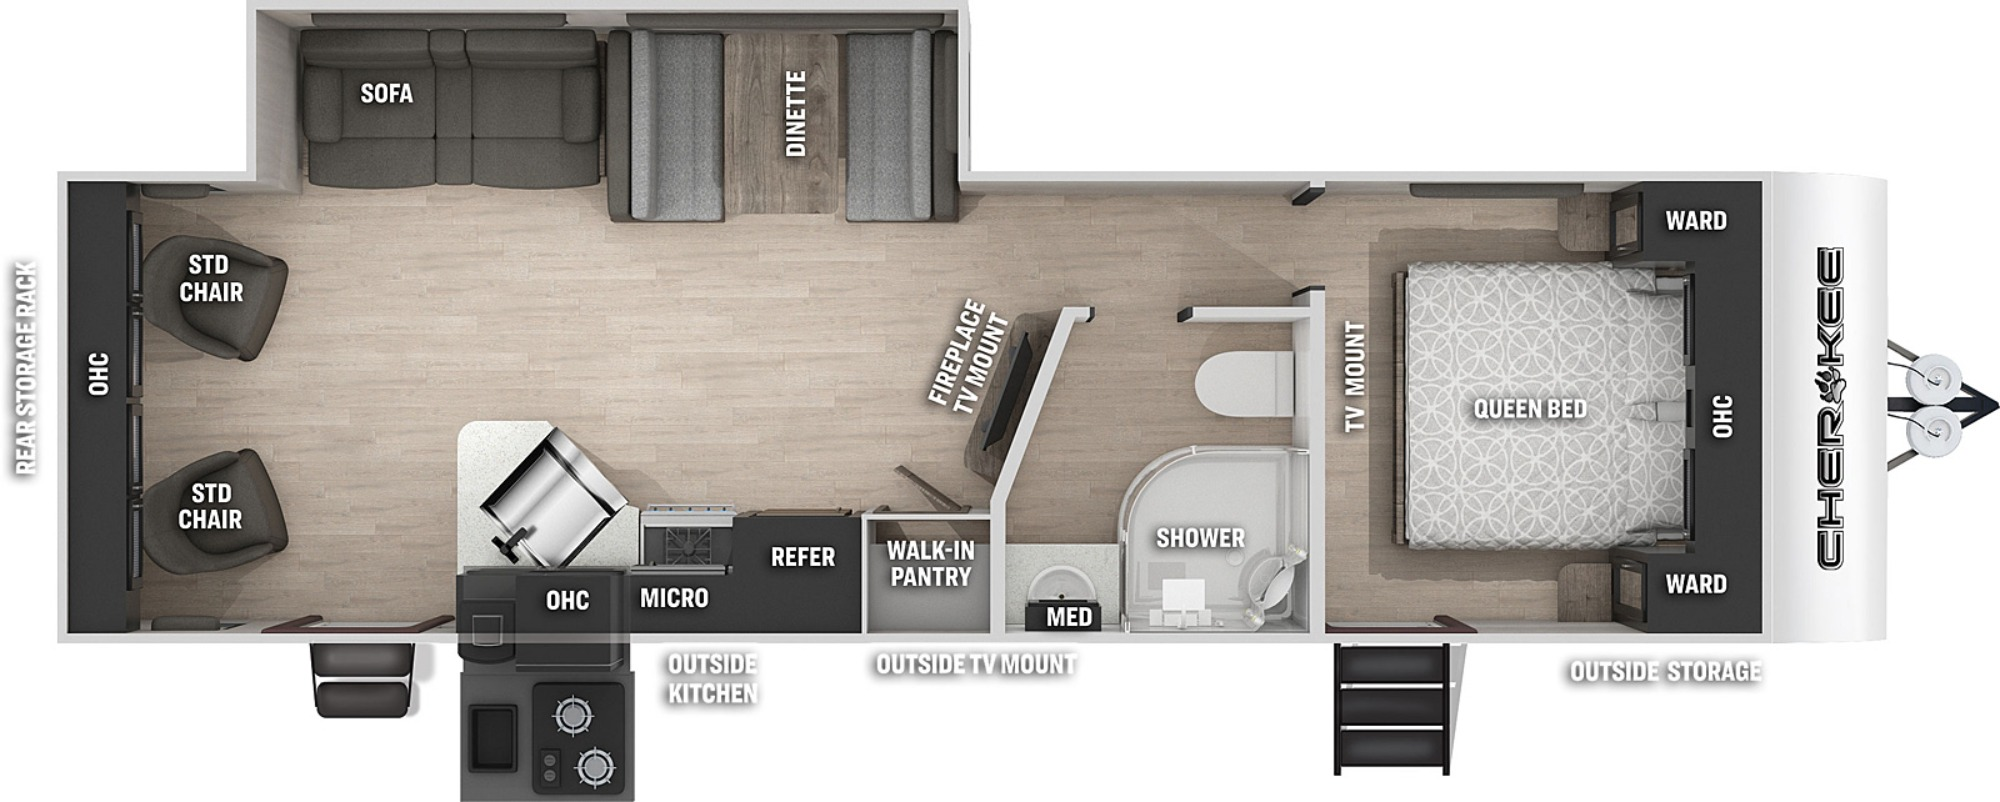 View Floor Plan for 2022 FOREST RIVER CHEROKEE 264RL